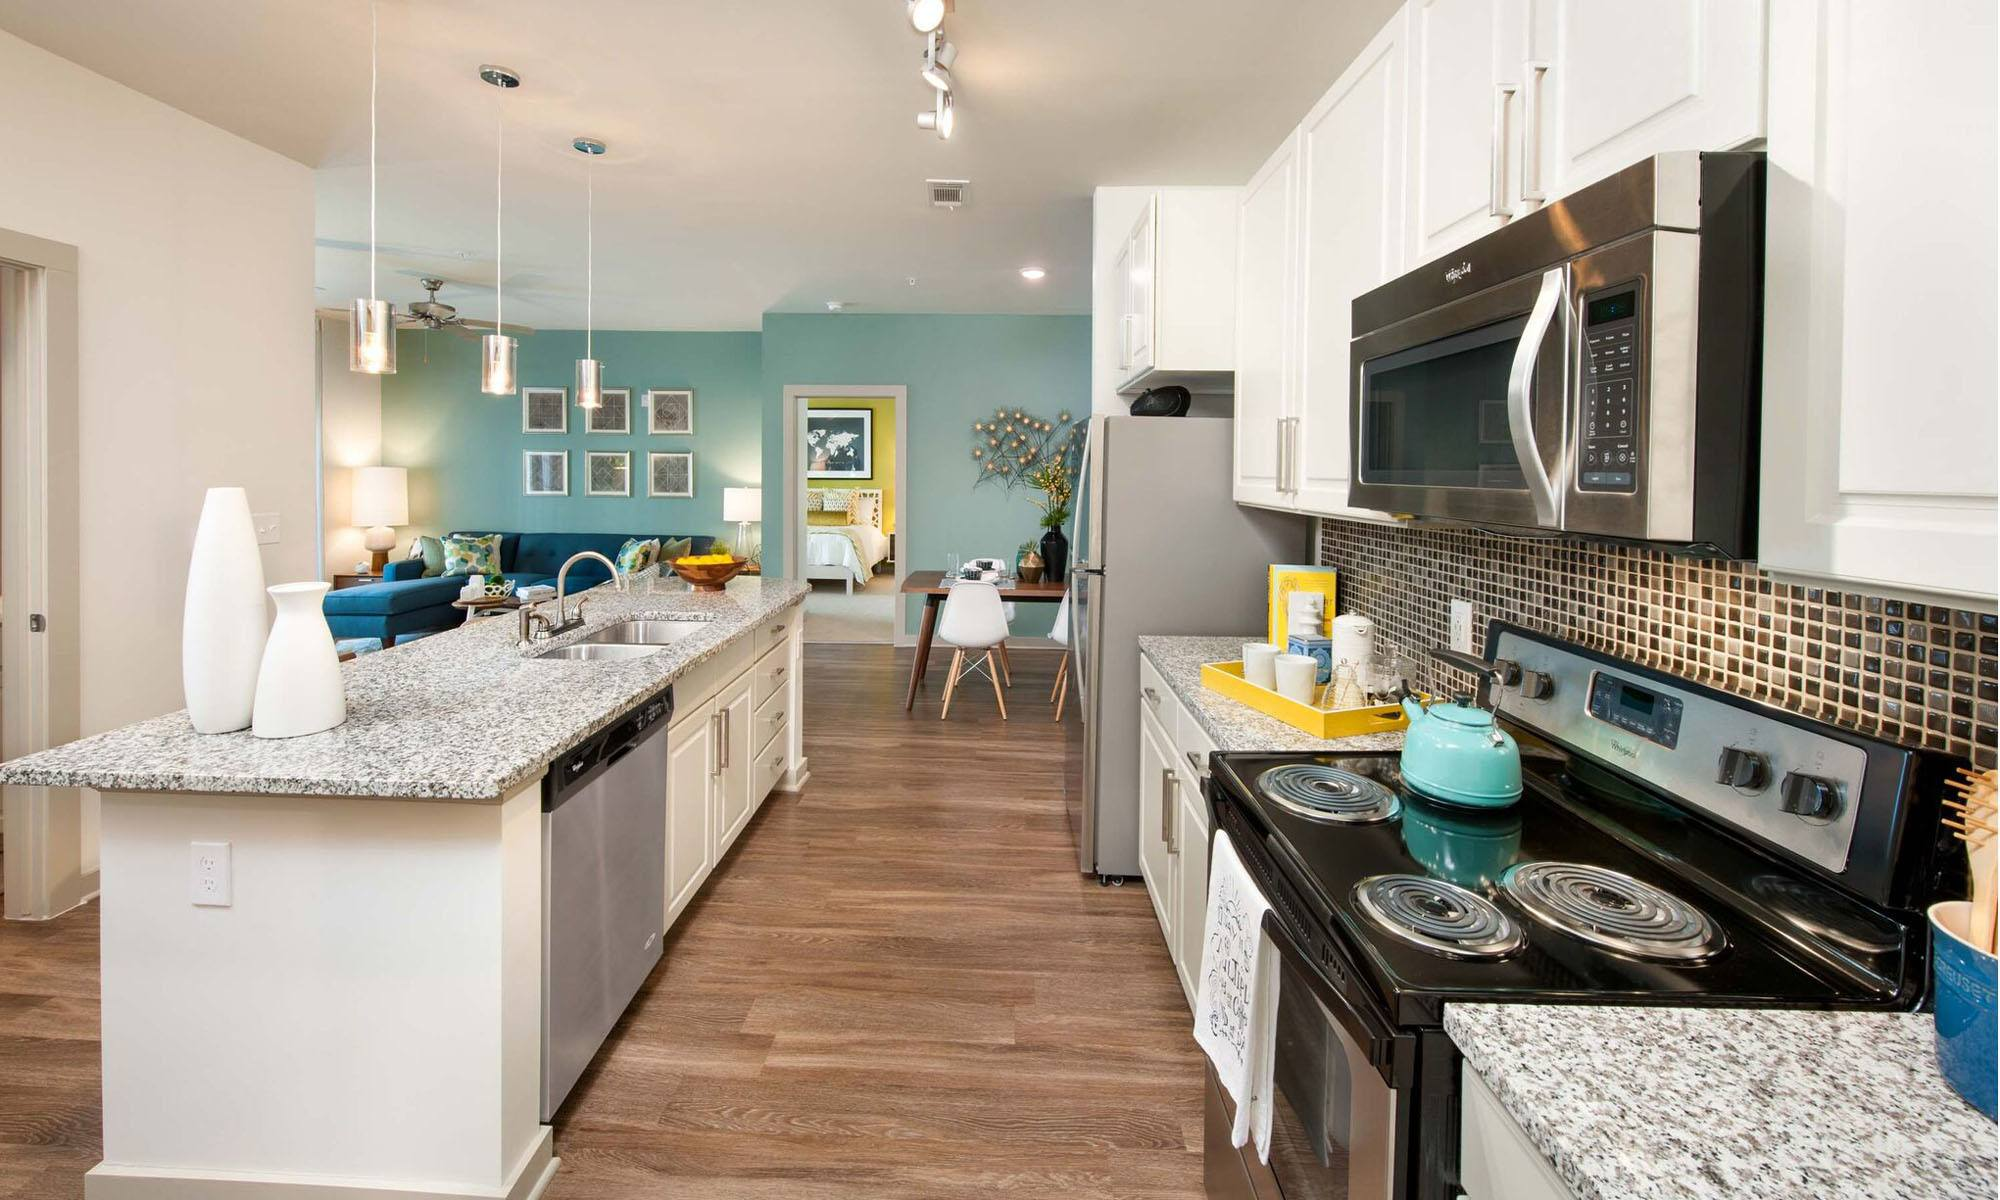 Apartments in camp creek atlanta ga the meridian at redwine - 3 bedroom apartments in atlanta ga ...